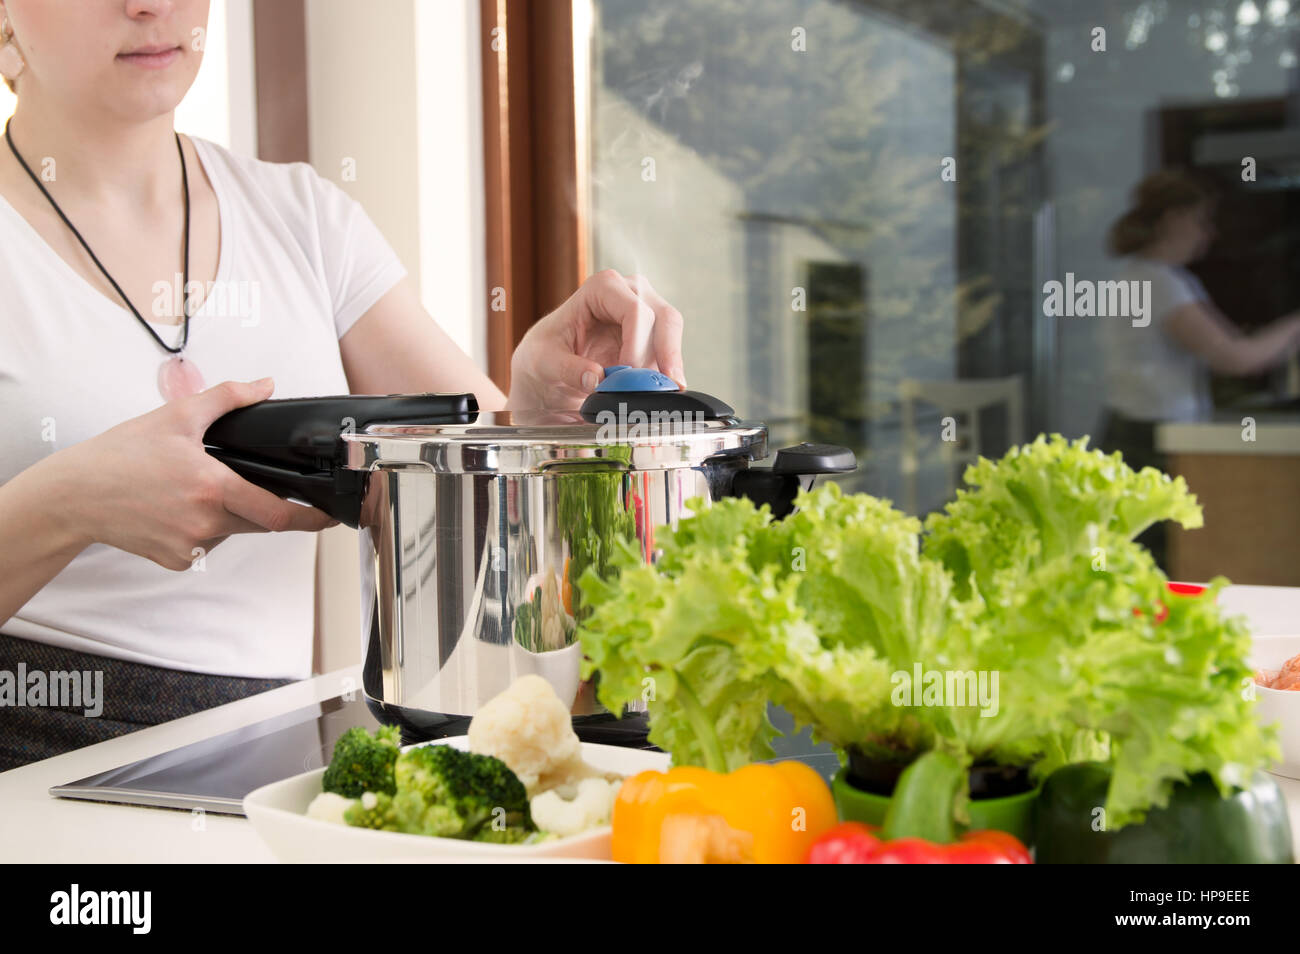 Woman uses pressure cooker to cook a meal. Conception of healthy nutrition. - Stock Image